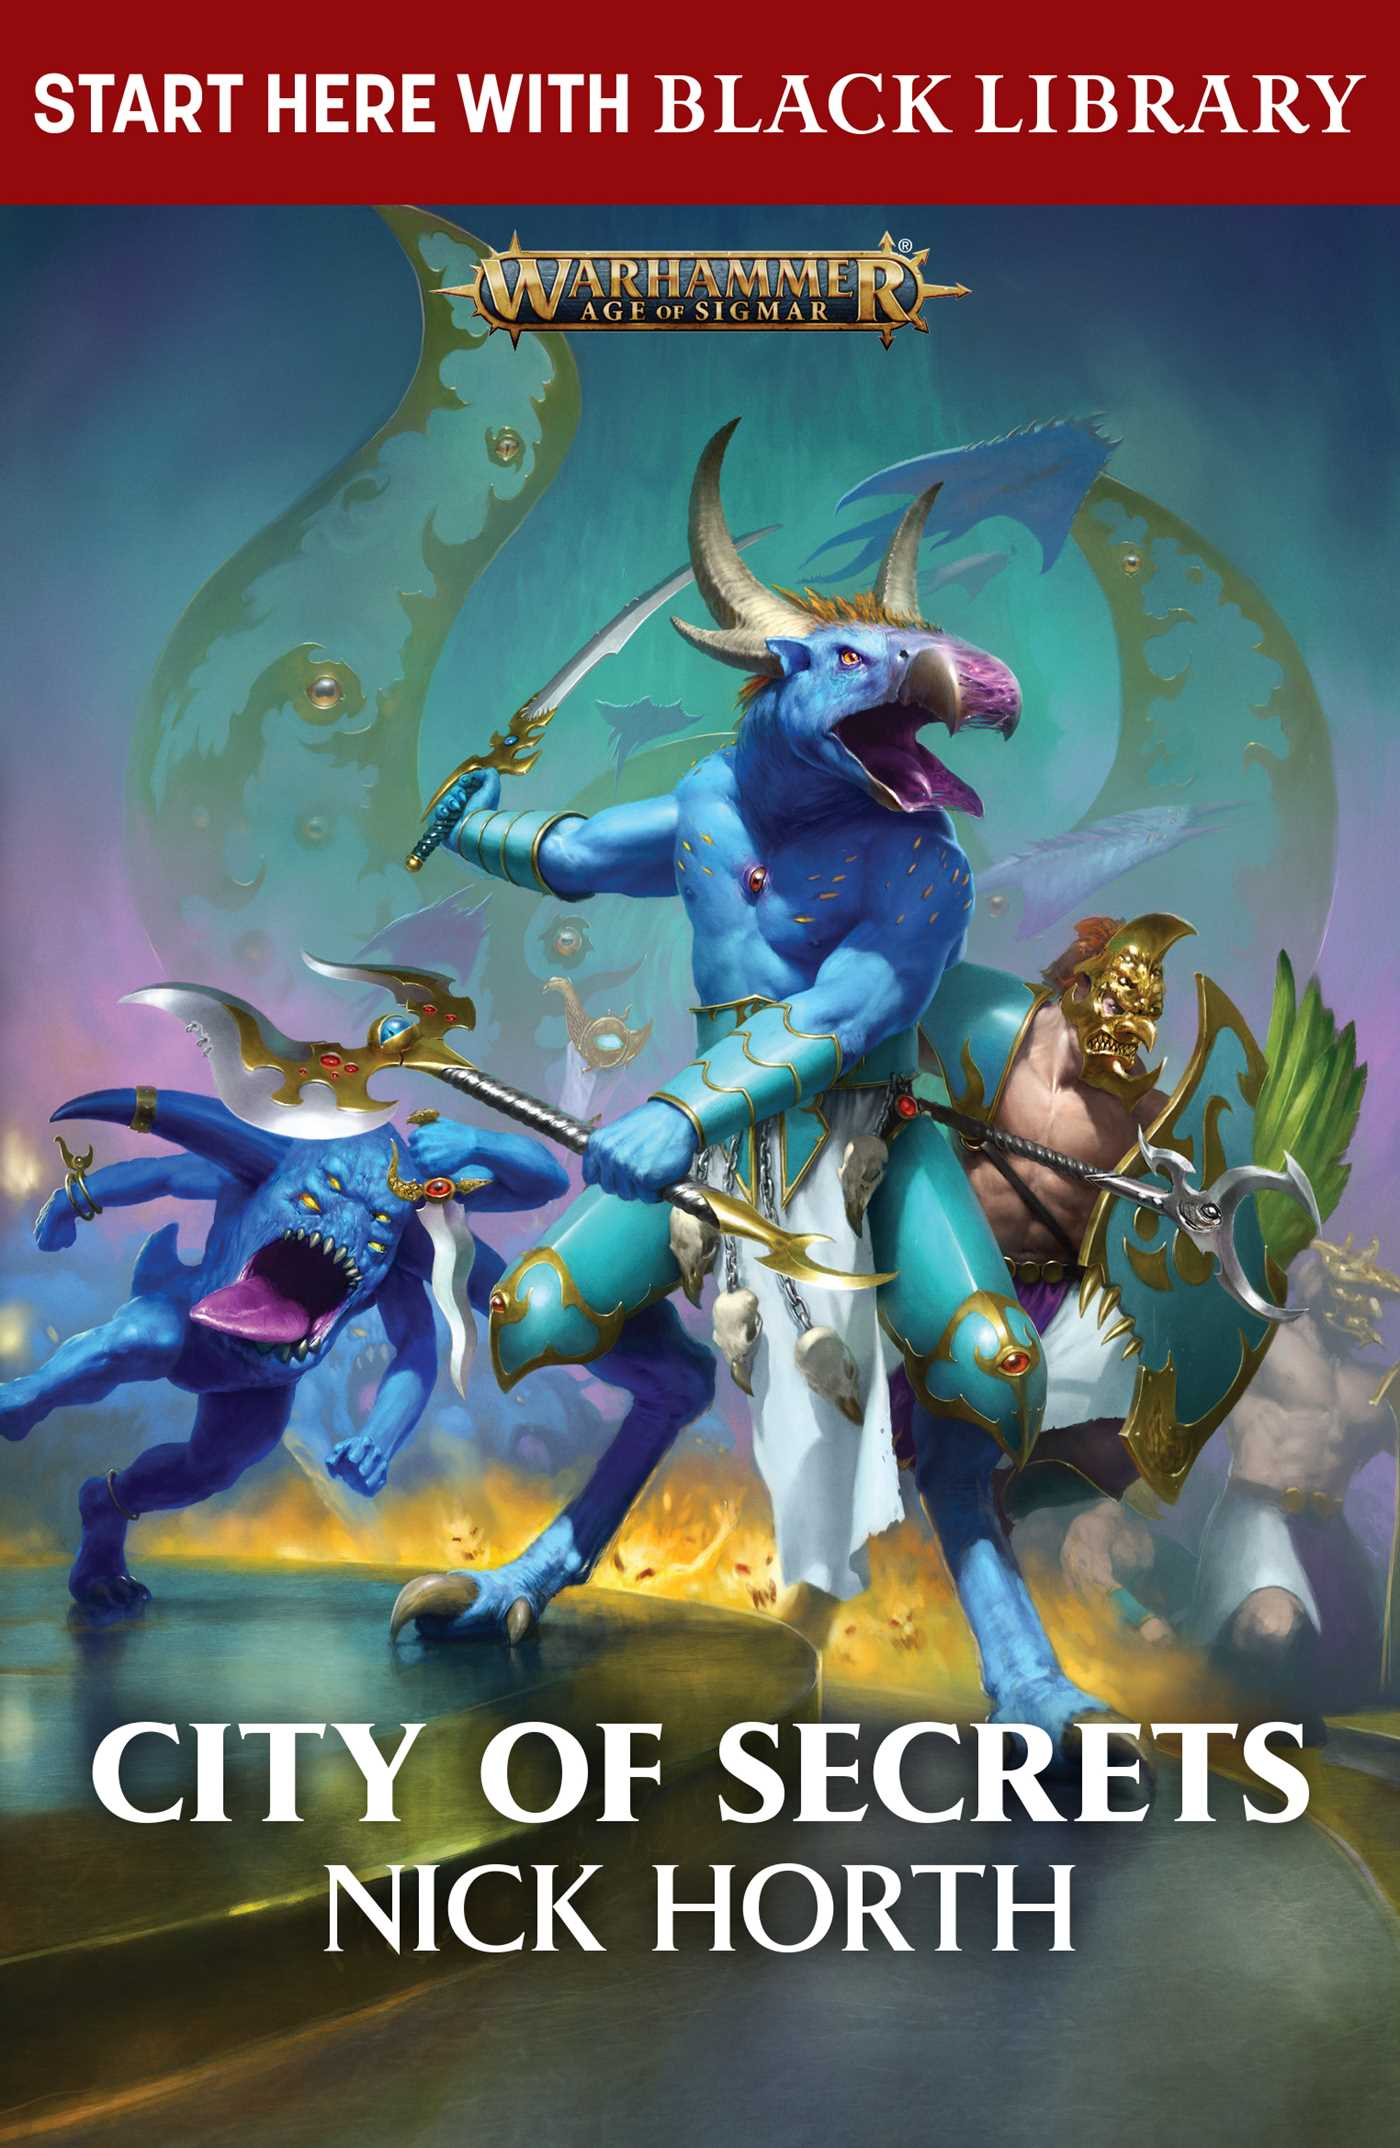 City of secrets 9781784967512 hr